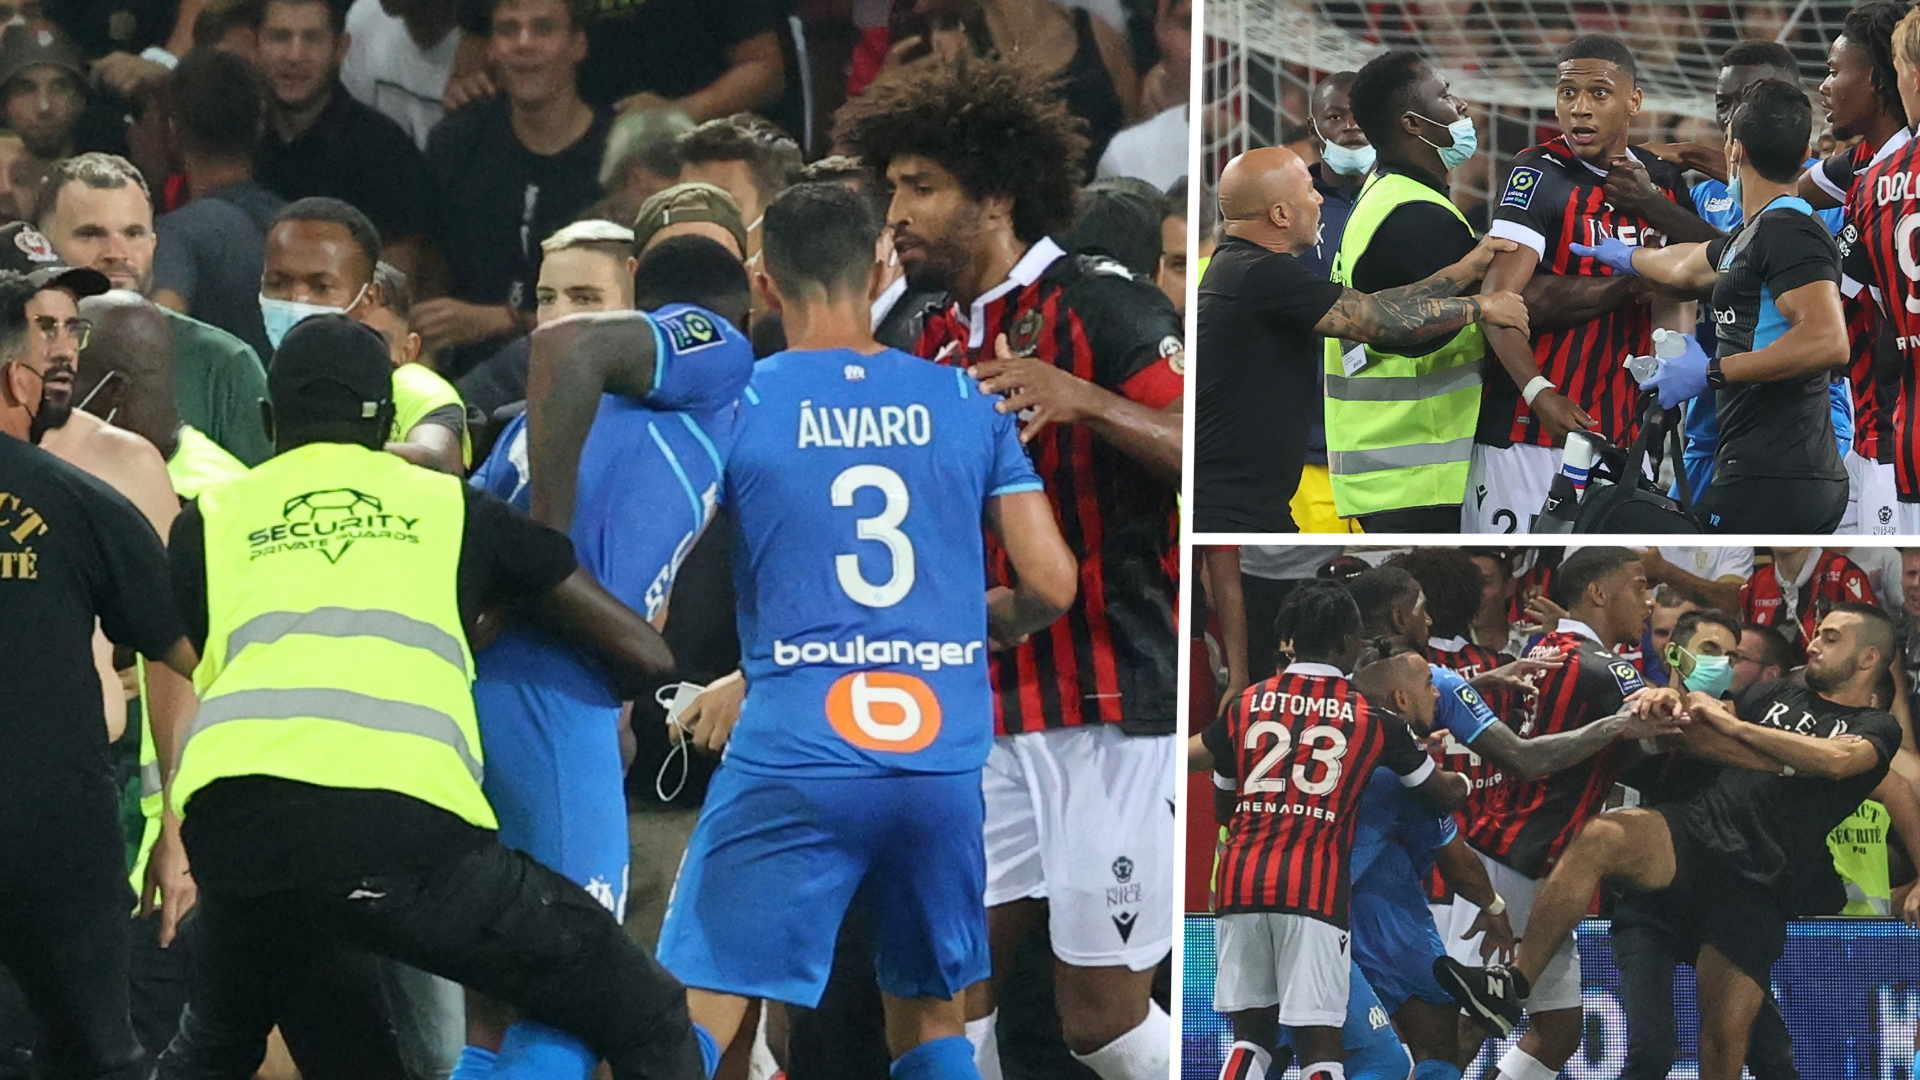 Marseille match suspended as Nice fans storm pitch to spark brawl